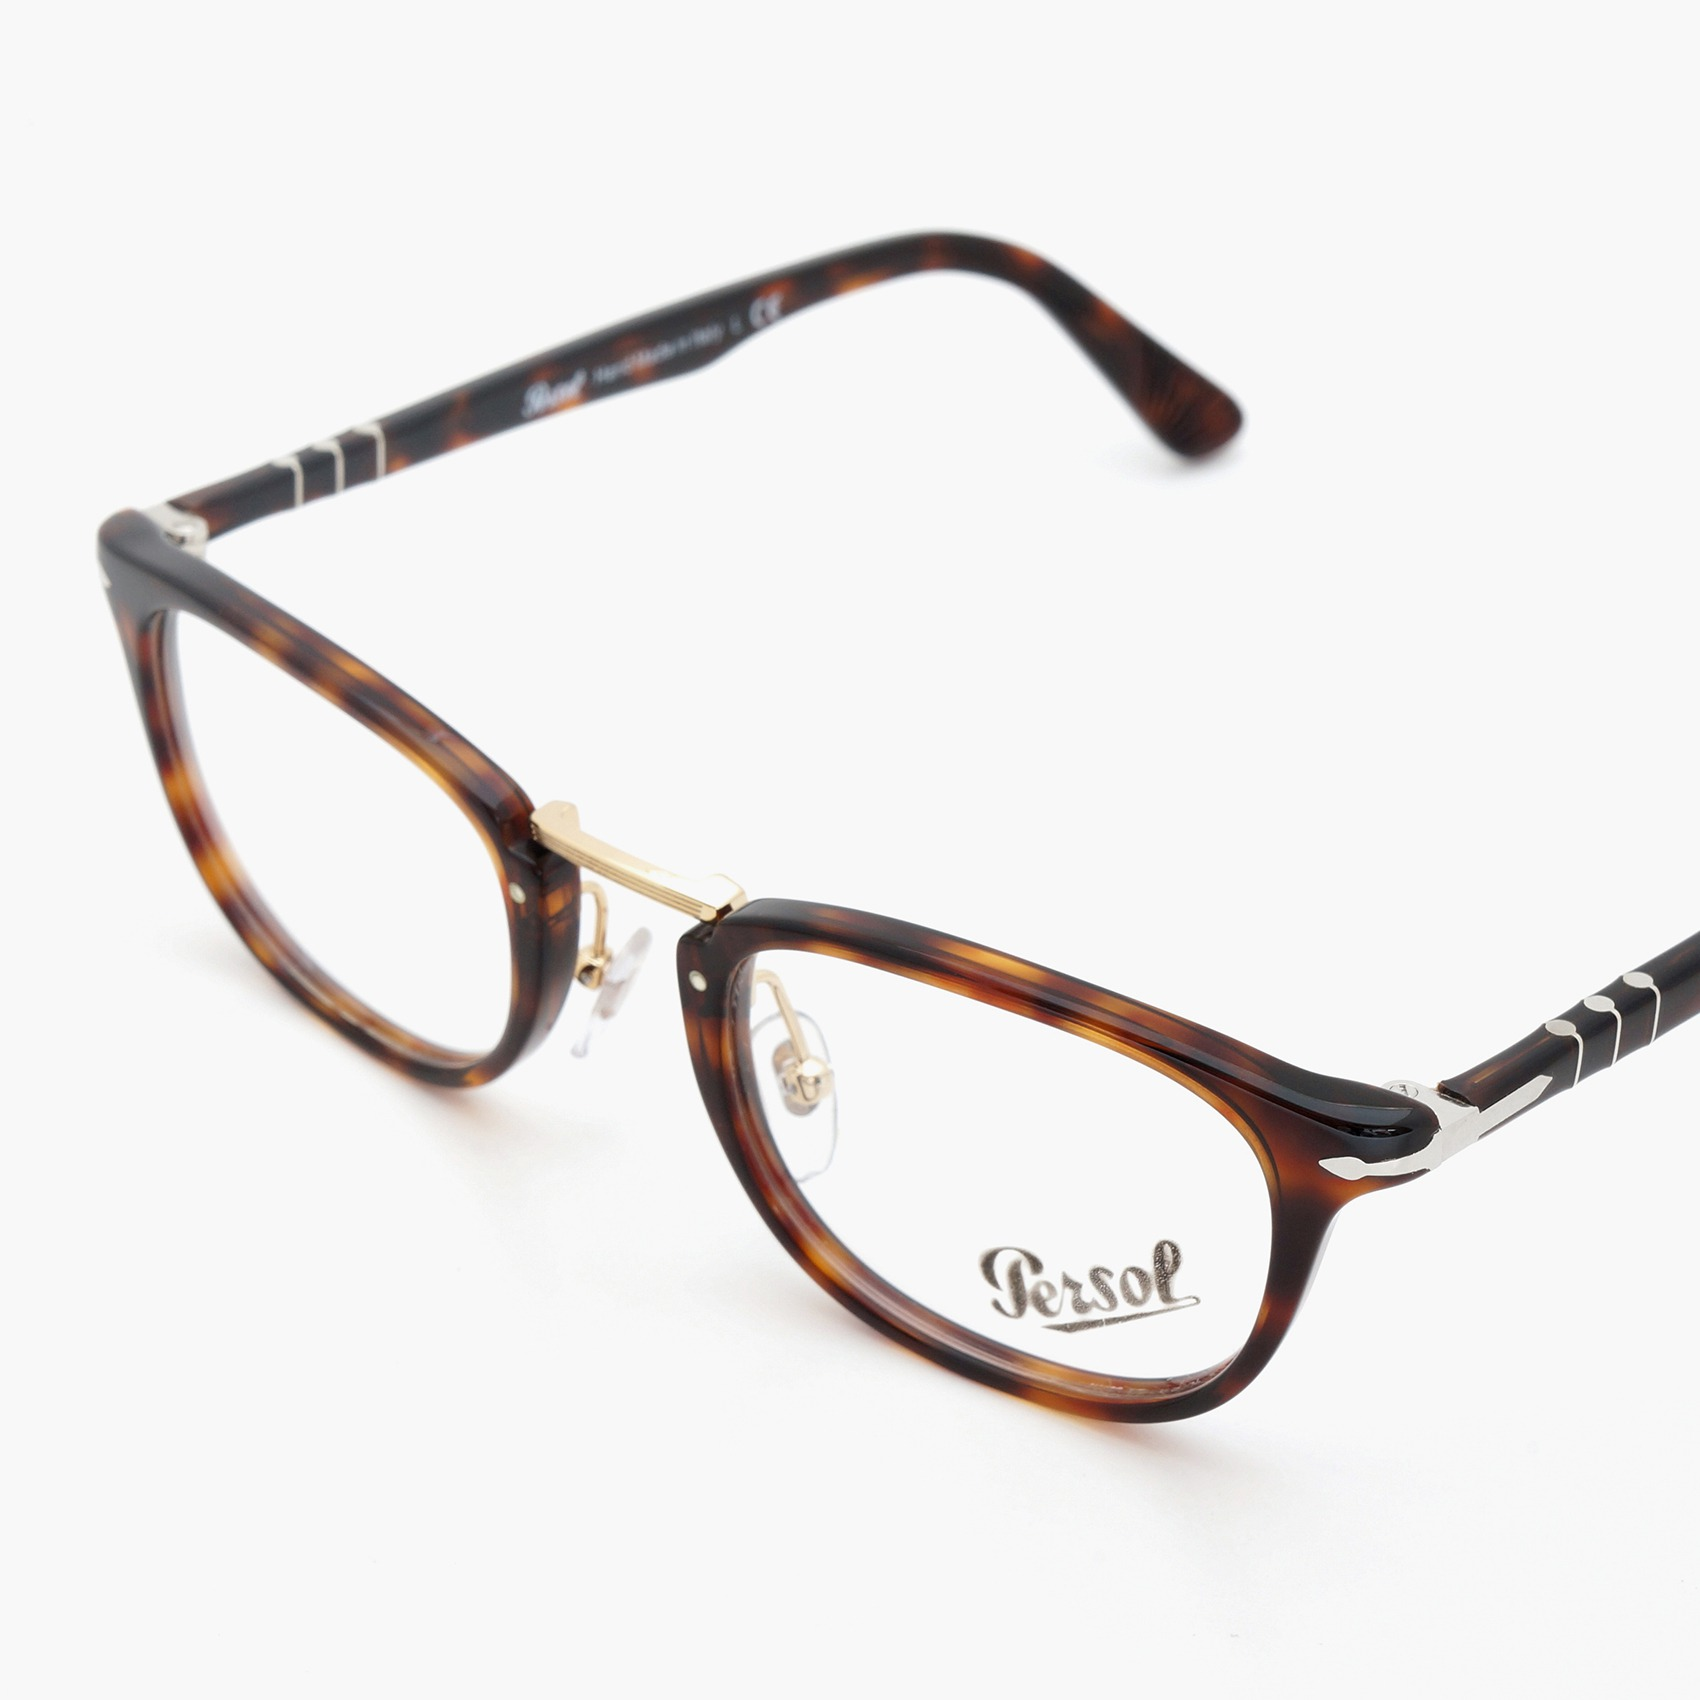 Persol Typewriter Edition スクエア